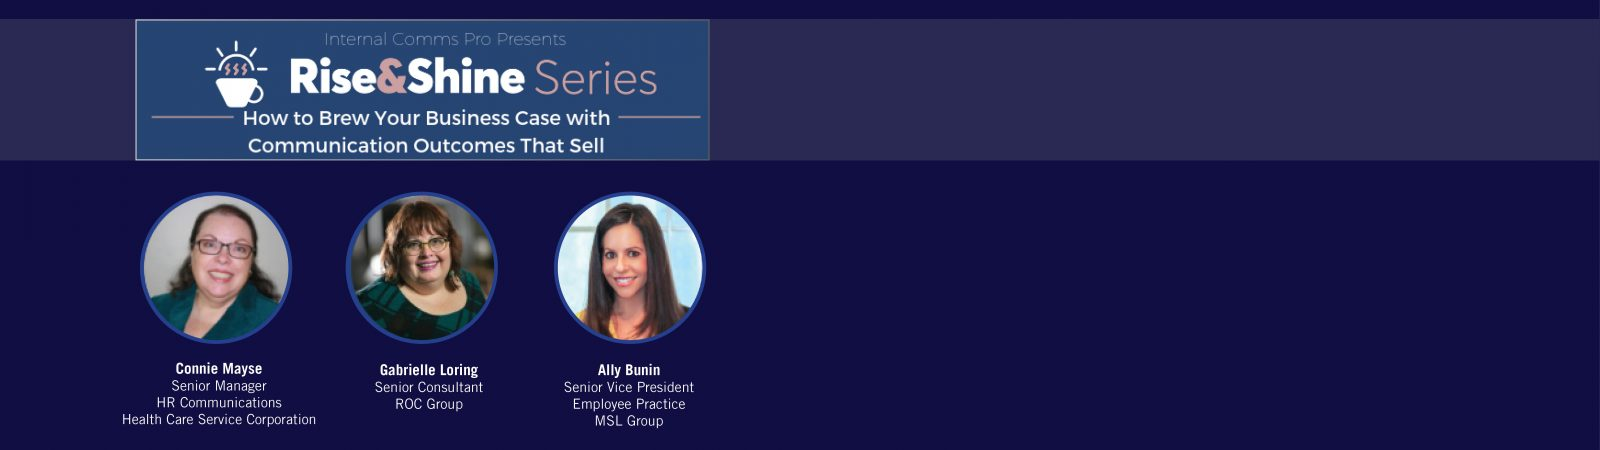 FREE WORKSHOP 2/26: How to Brew Your Business Case with Communication Outcomes That Sell